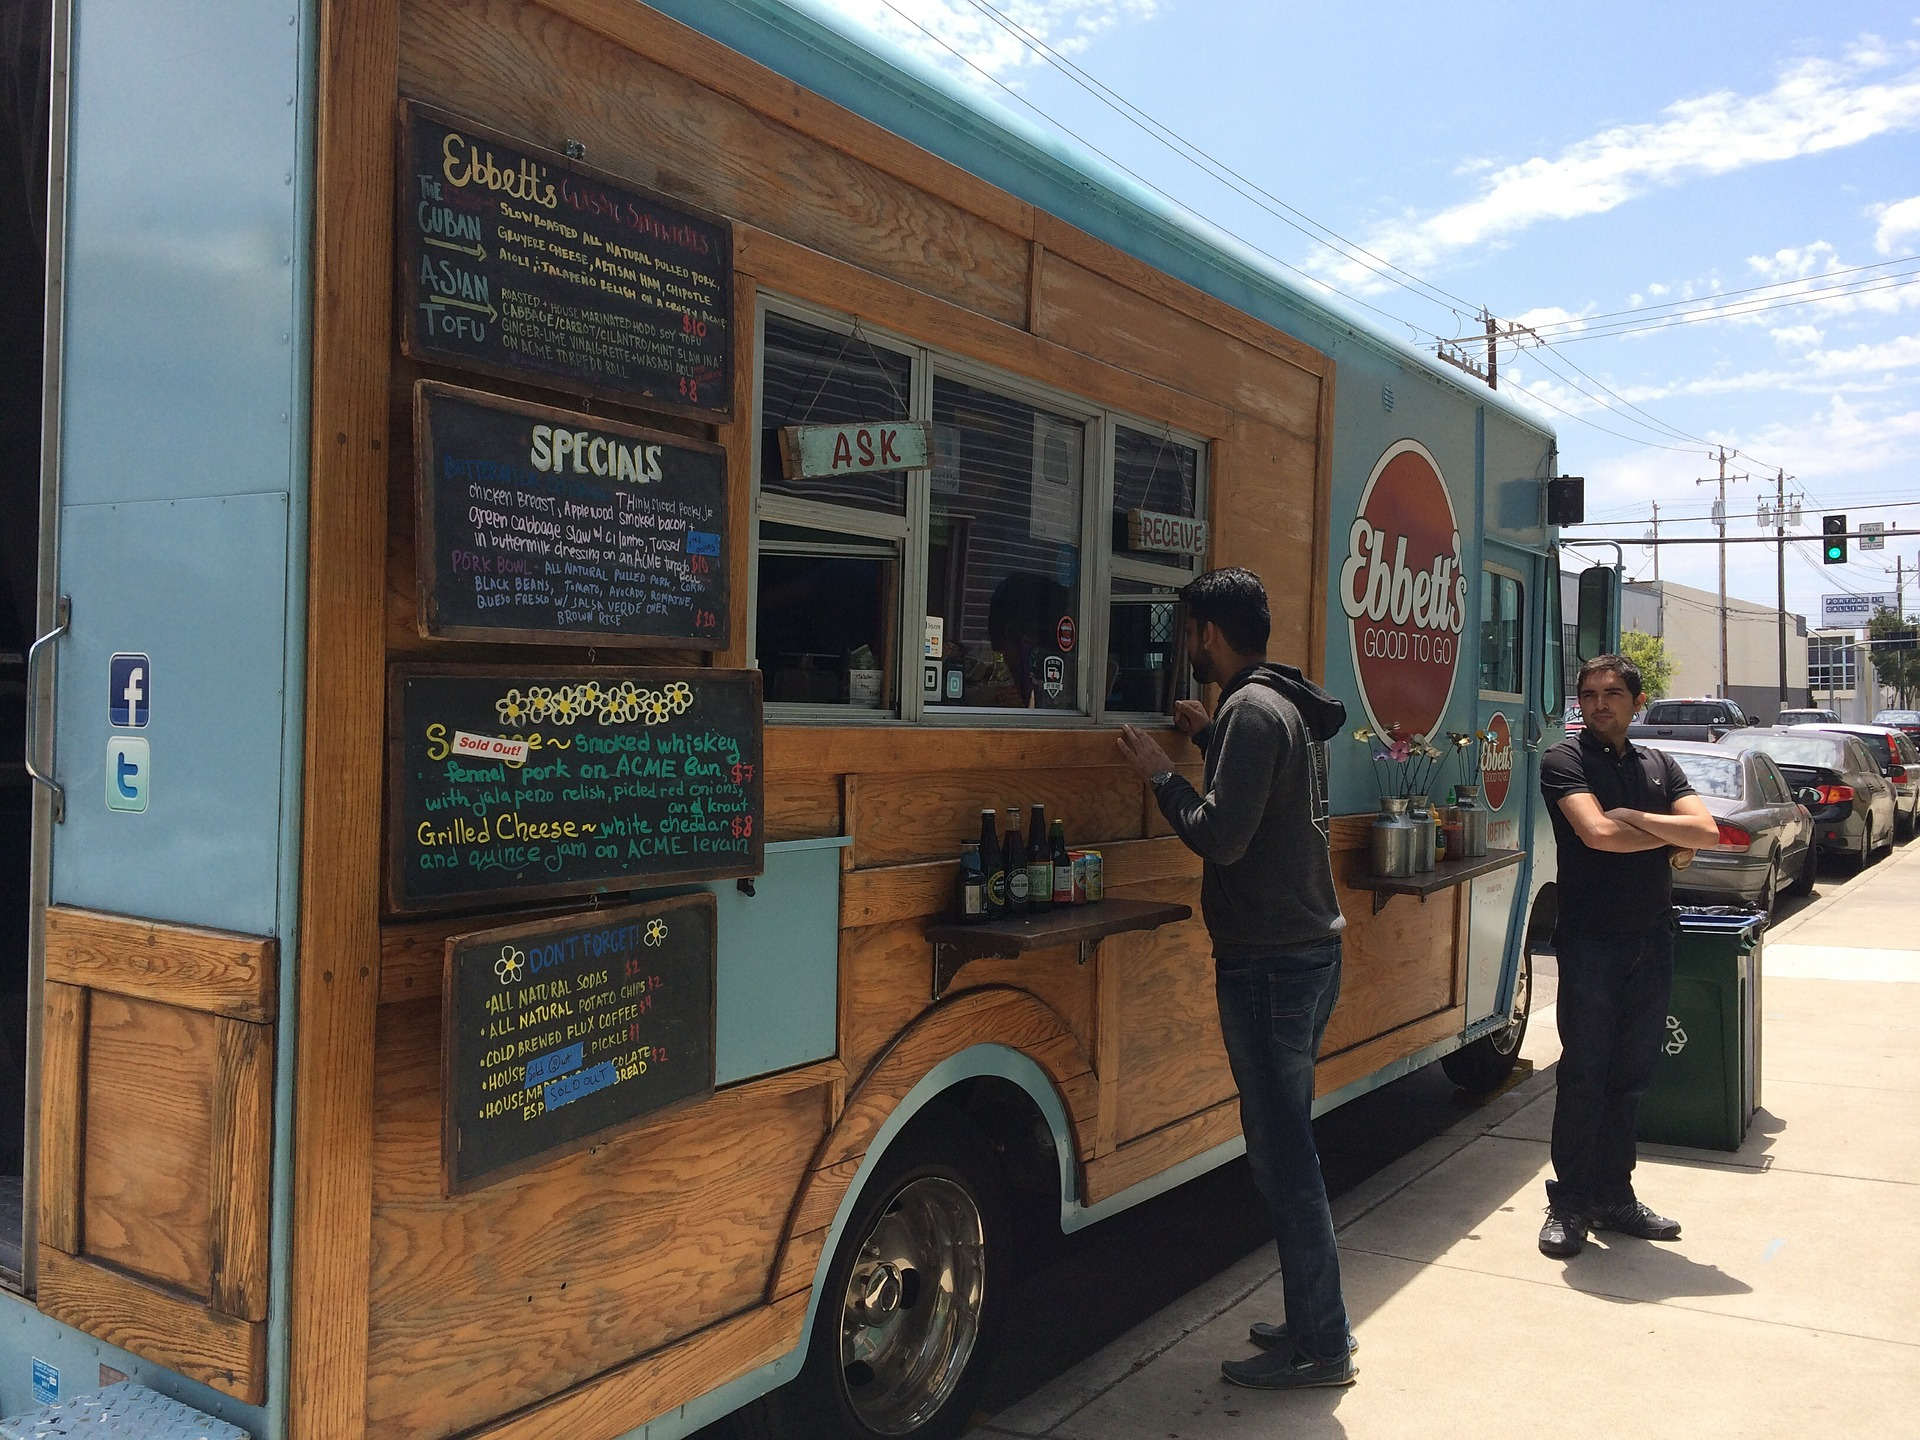 10 Best Food Trucks In The US To Visit On National Truck Day